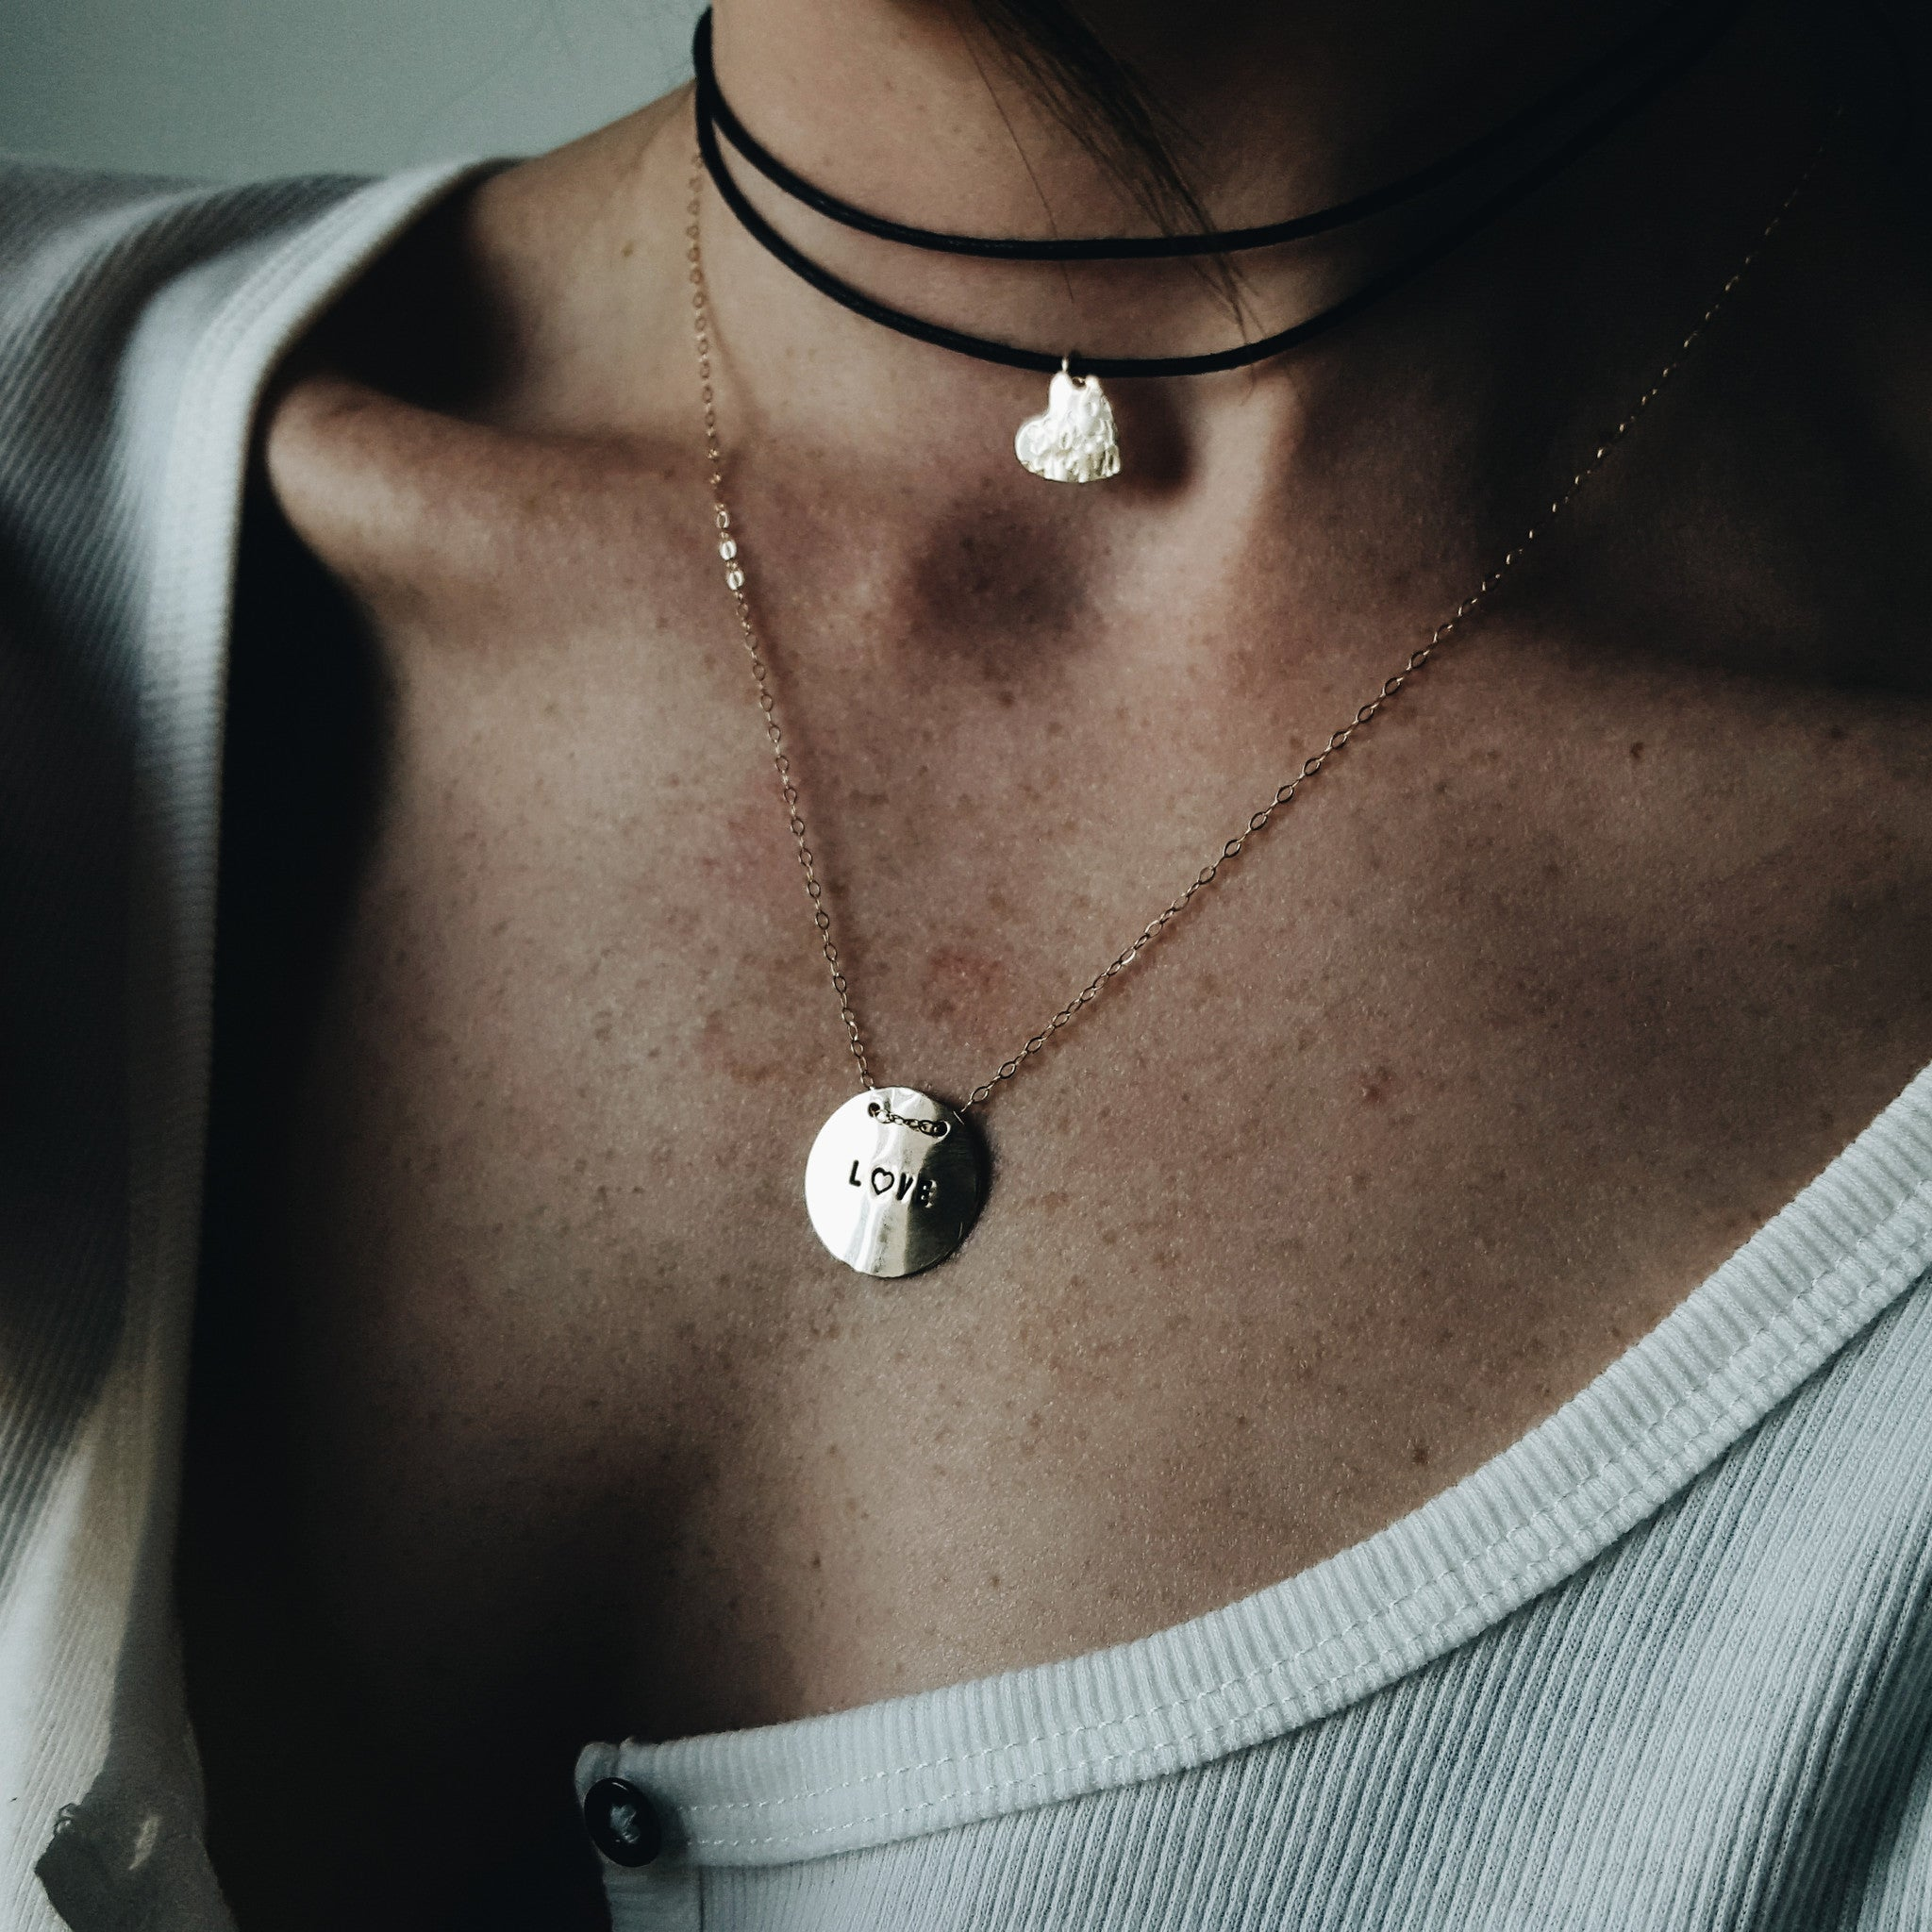 a close up of a woman's neck with a black wrapped chocker and a gold pendant with love stamped on it